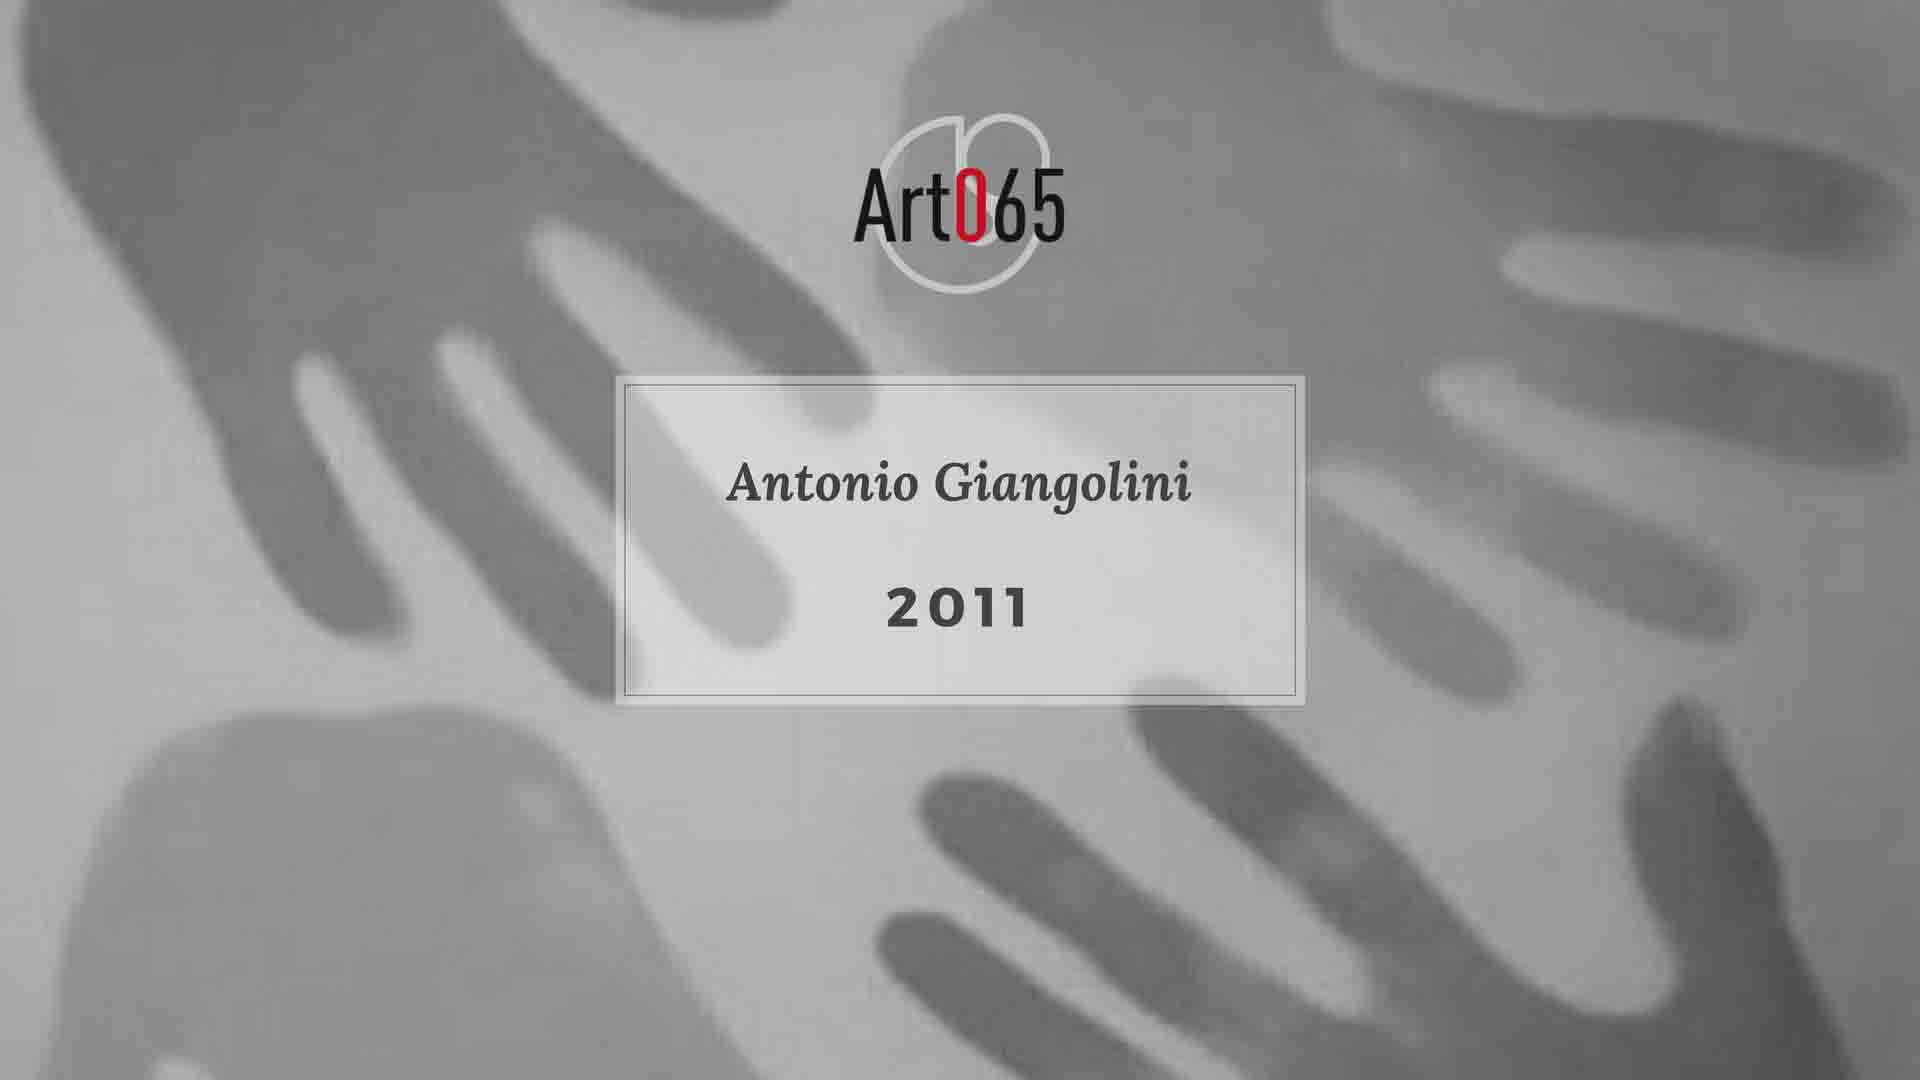 Antonio Giangolini - 2011 Art065